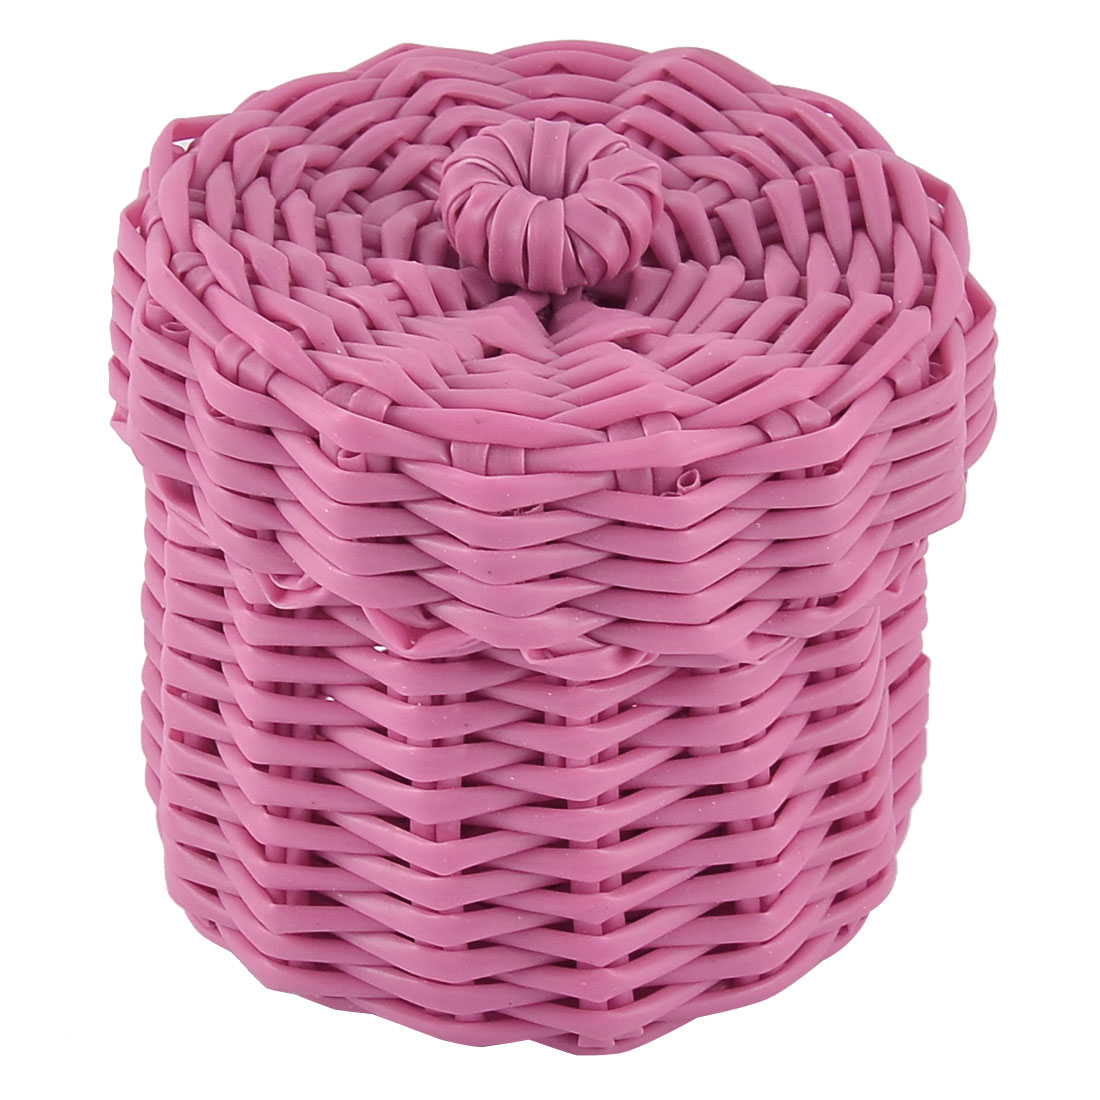 Home Office Plastic Knit Gathering Settle Storage Box Case Basket w Lid Pink